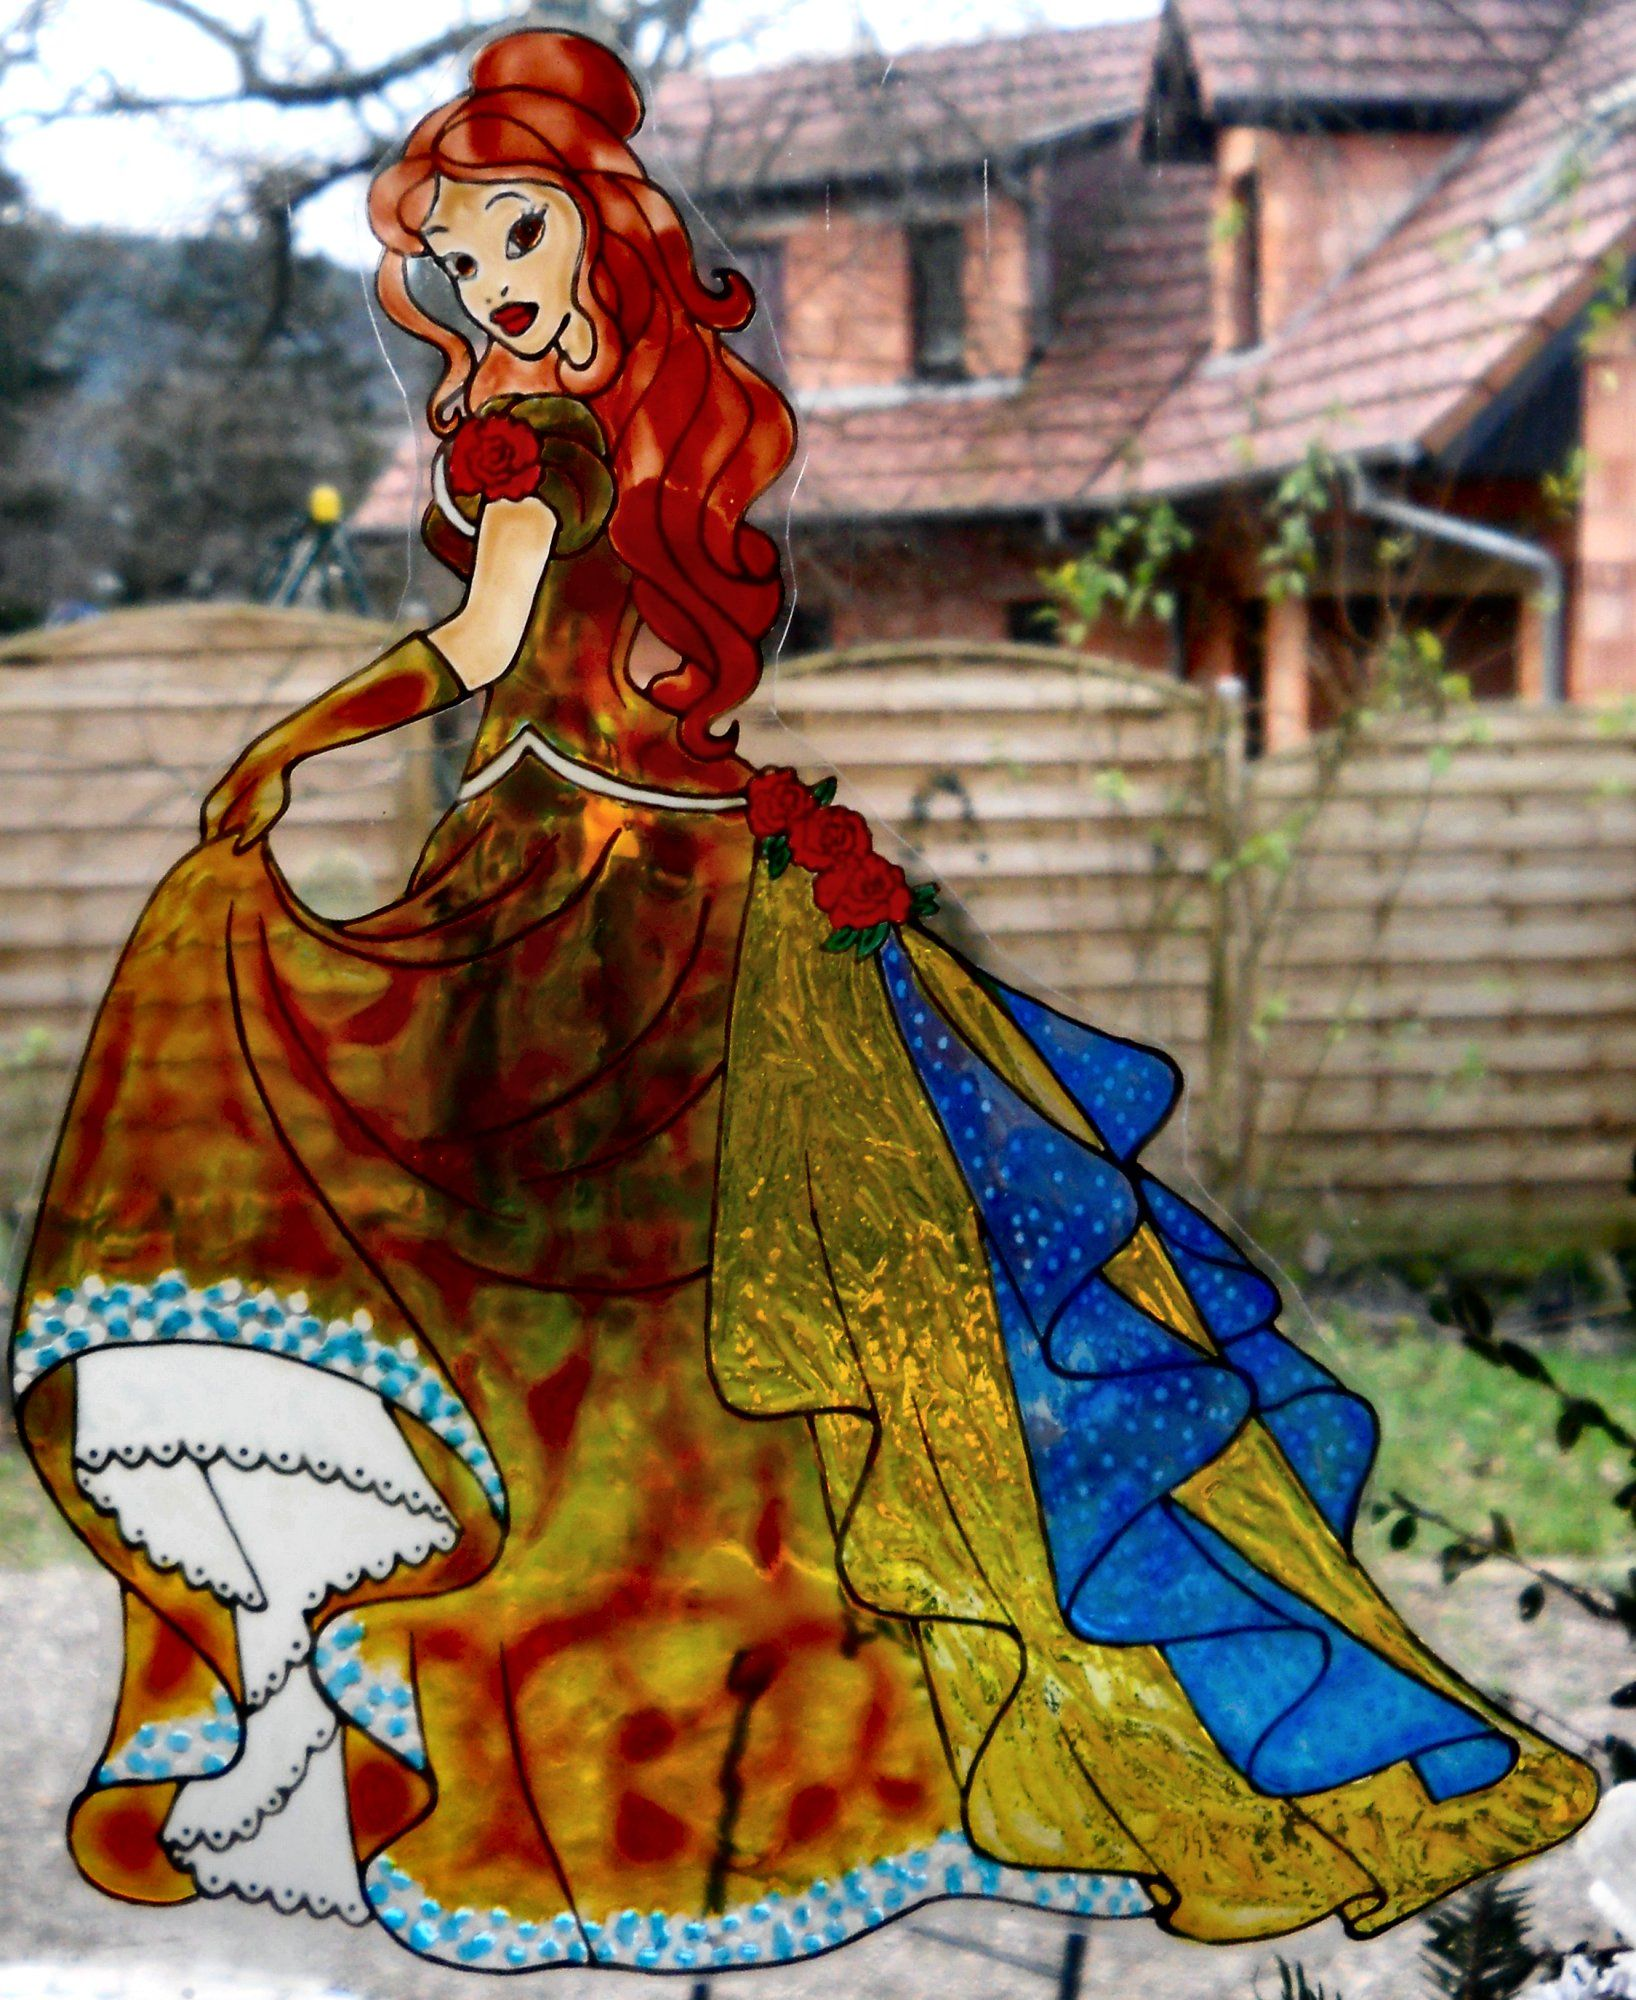 princess Bella glamour wicoart HANDMADE STAINED GLASS EFFECT WINDOW CLING EASY TO APPLY AND TO REMOVE HAND PAINTED WITH GALLERY GLASS AND GLASS PAINT PEBEO ON AN ELECTROSTATIC VINYL SHEET ONE OF A KIND OOAK